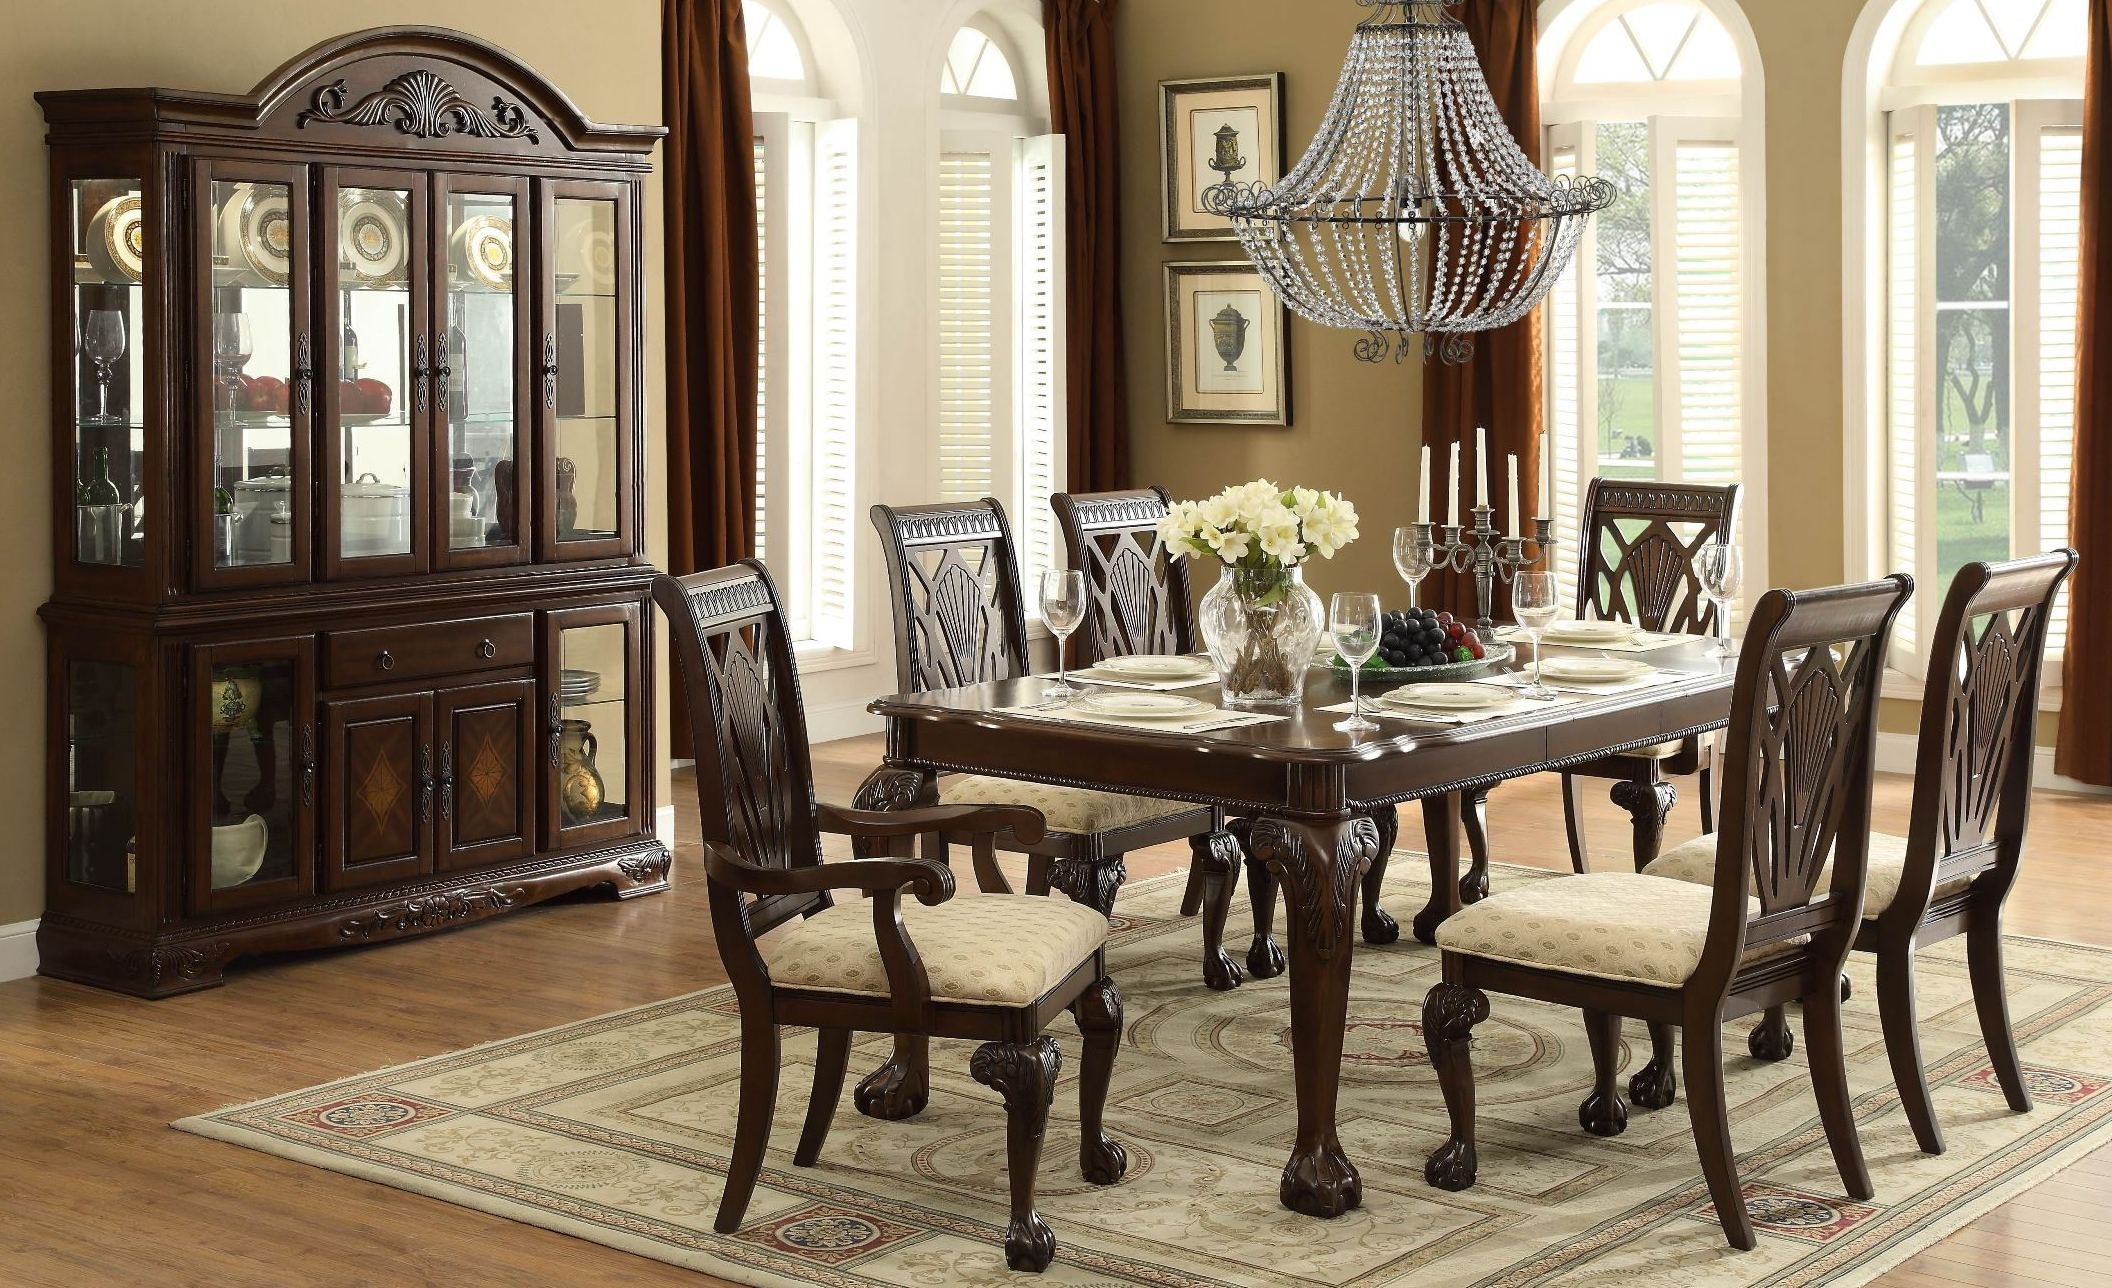 Norwich Warm Cherry Leg Dining Room Set from Homelegance 505582  Coleman Furniture